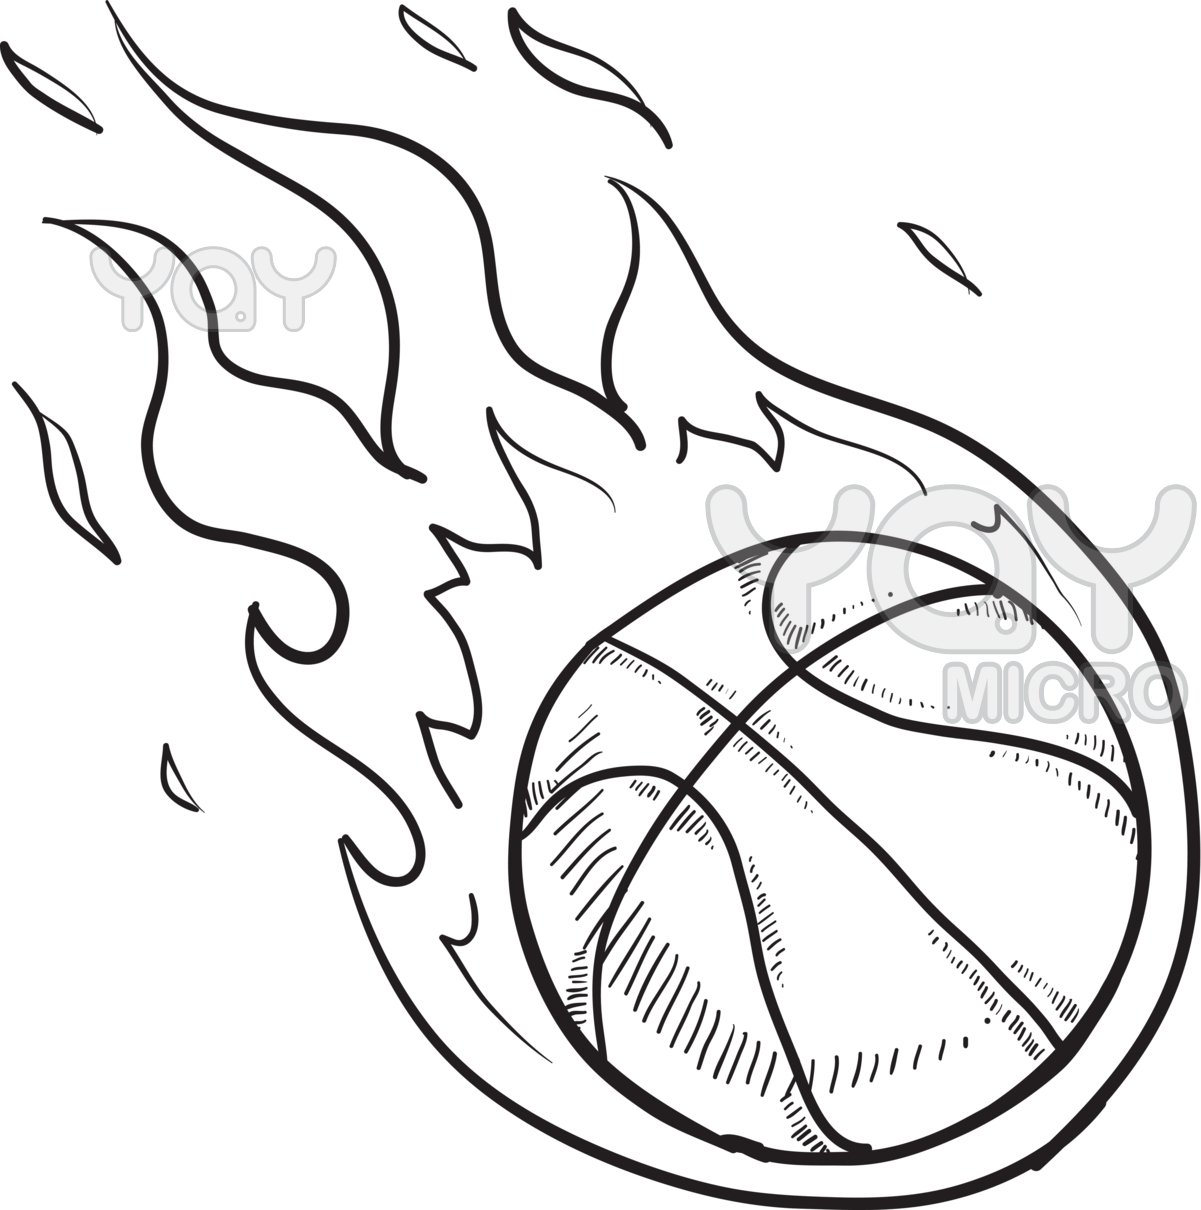 1201x1210 Basketball Coloring Page Pages Education Clip Art